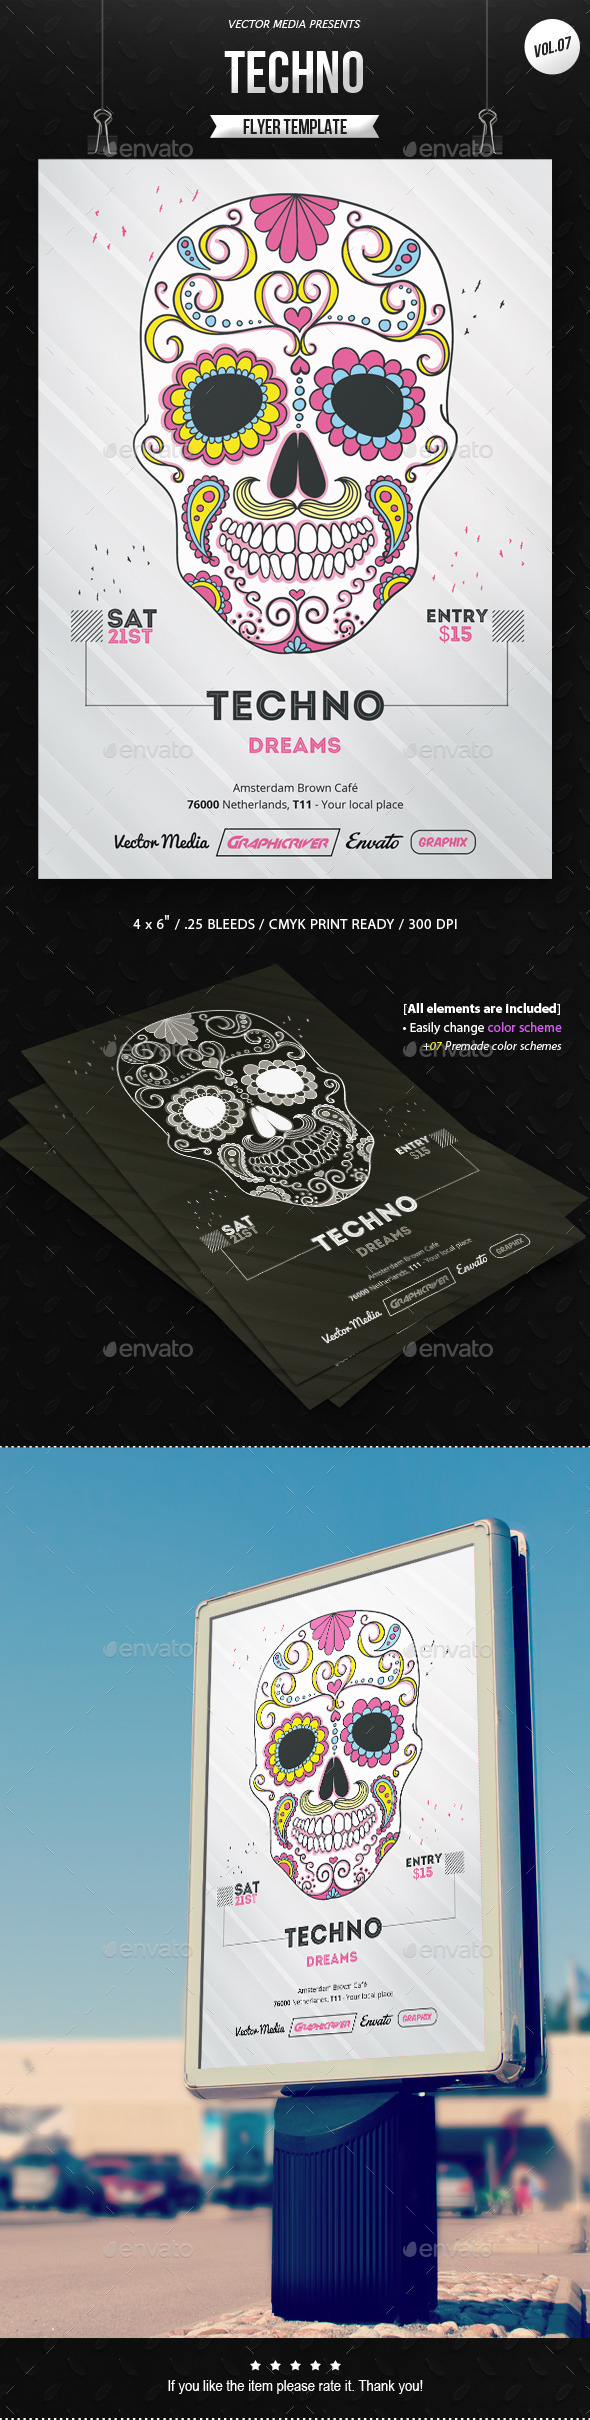 Techno - Flyer [Vol.7] - Clubs & Parties Events